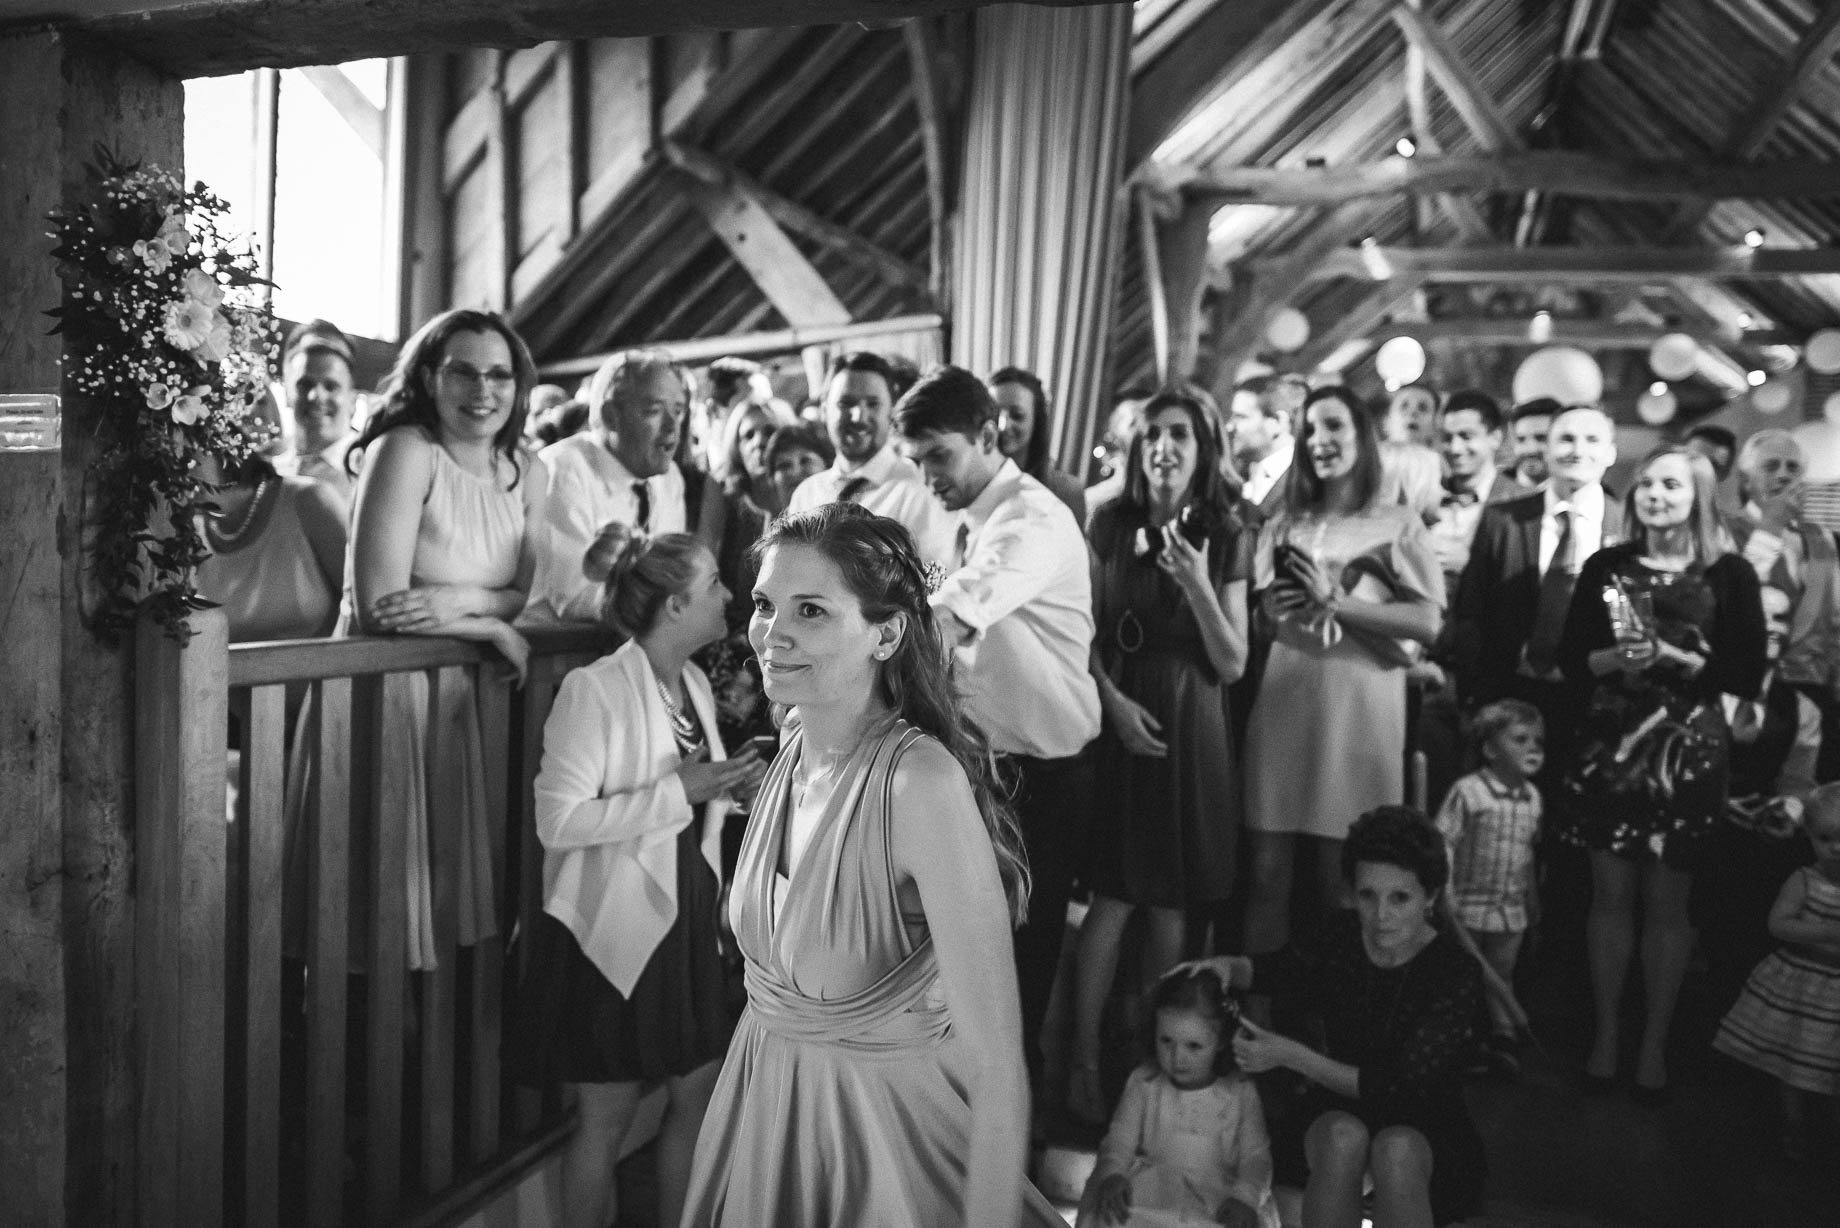 Bury Court Barn wedding photography by Guy Collier - Heather and Pat (161 of 170)